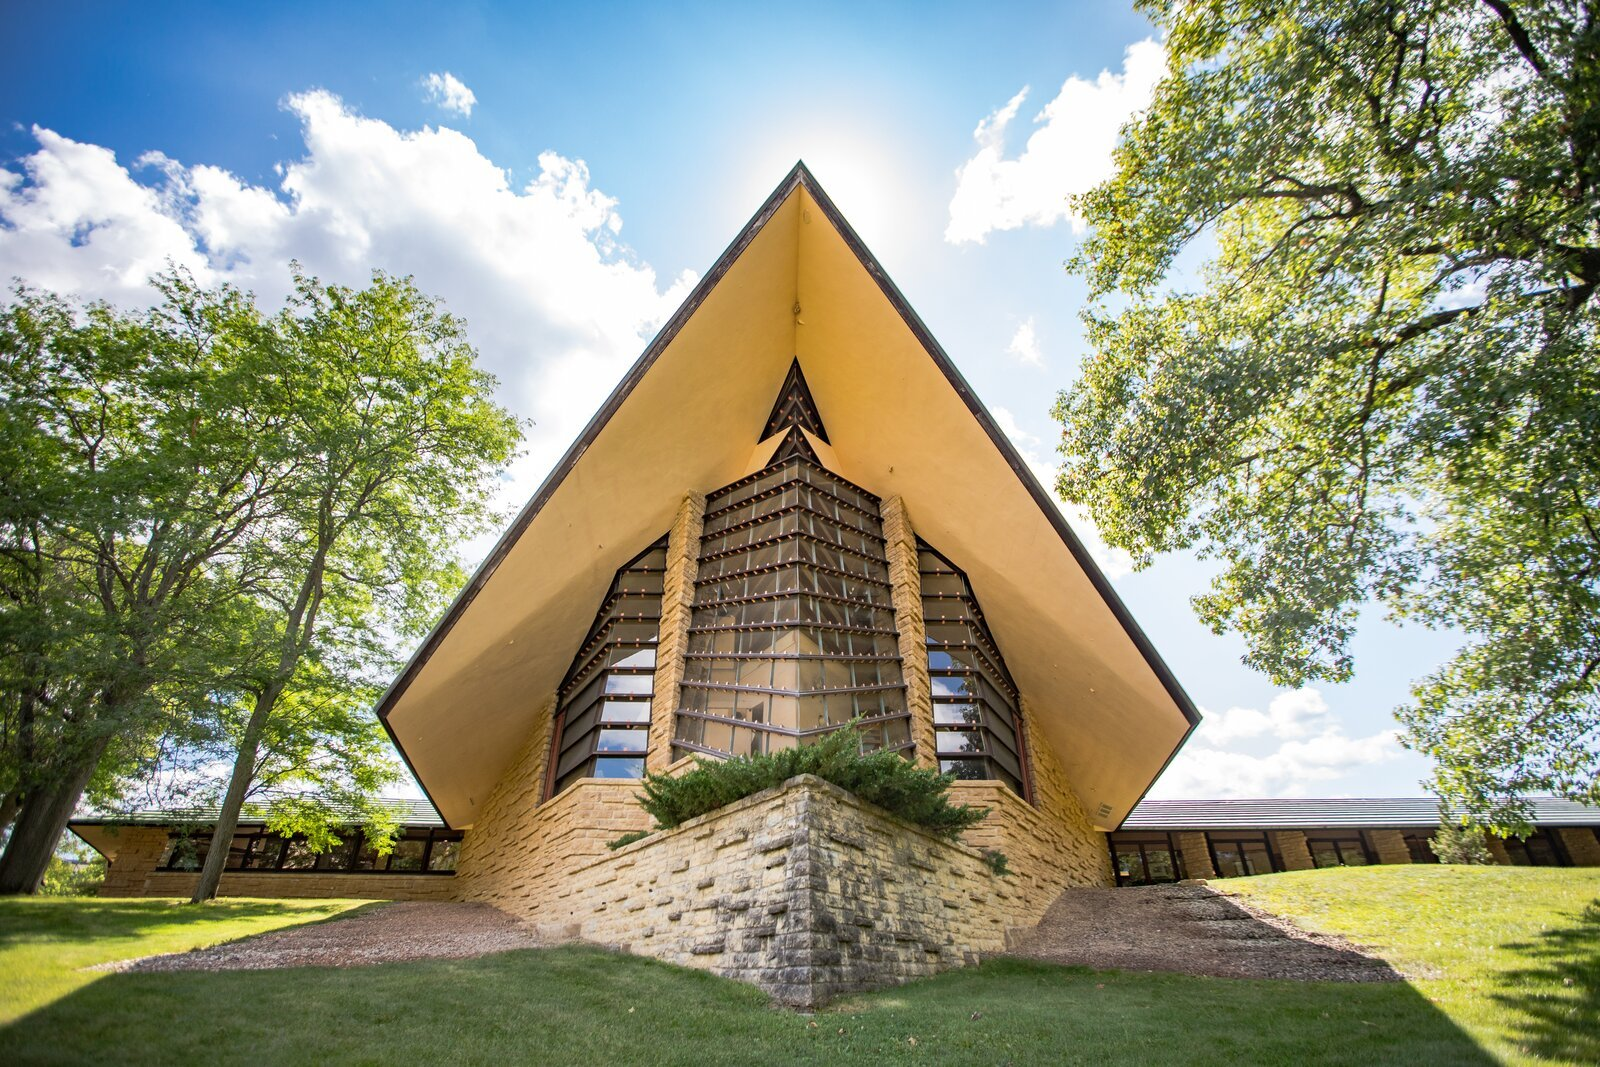 The Frank Lloyd Wright Road Trip That Midcentury-Modern Lovers Need to Take